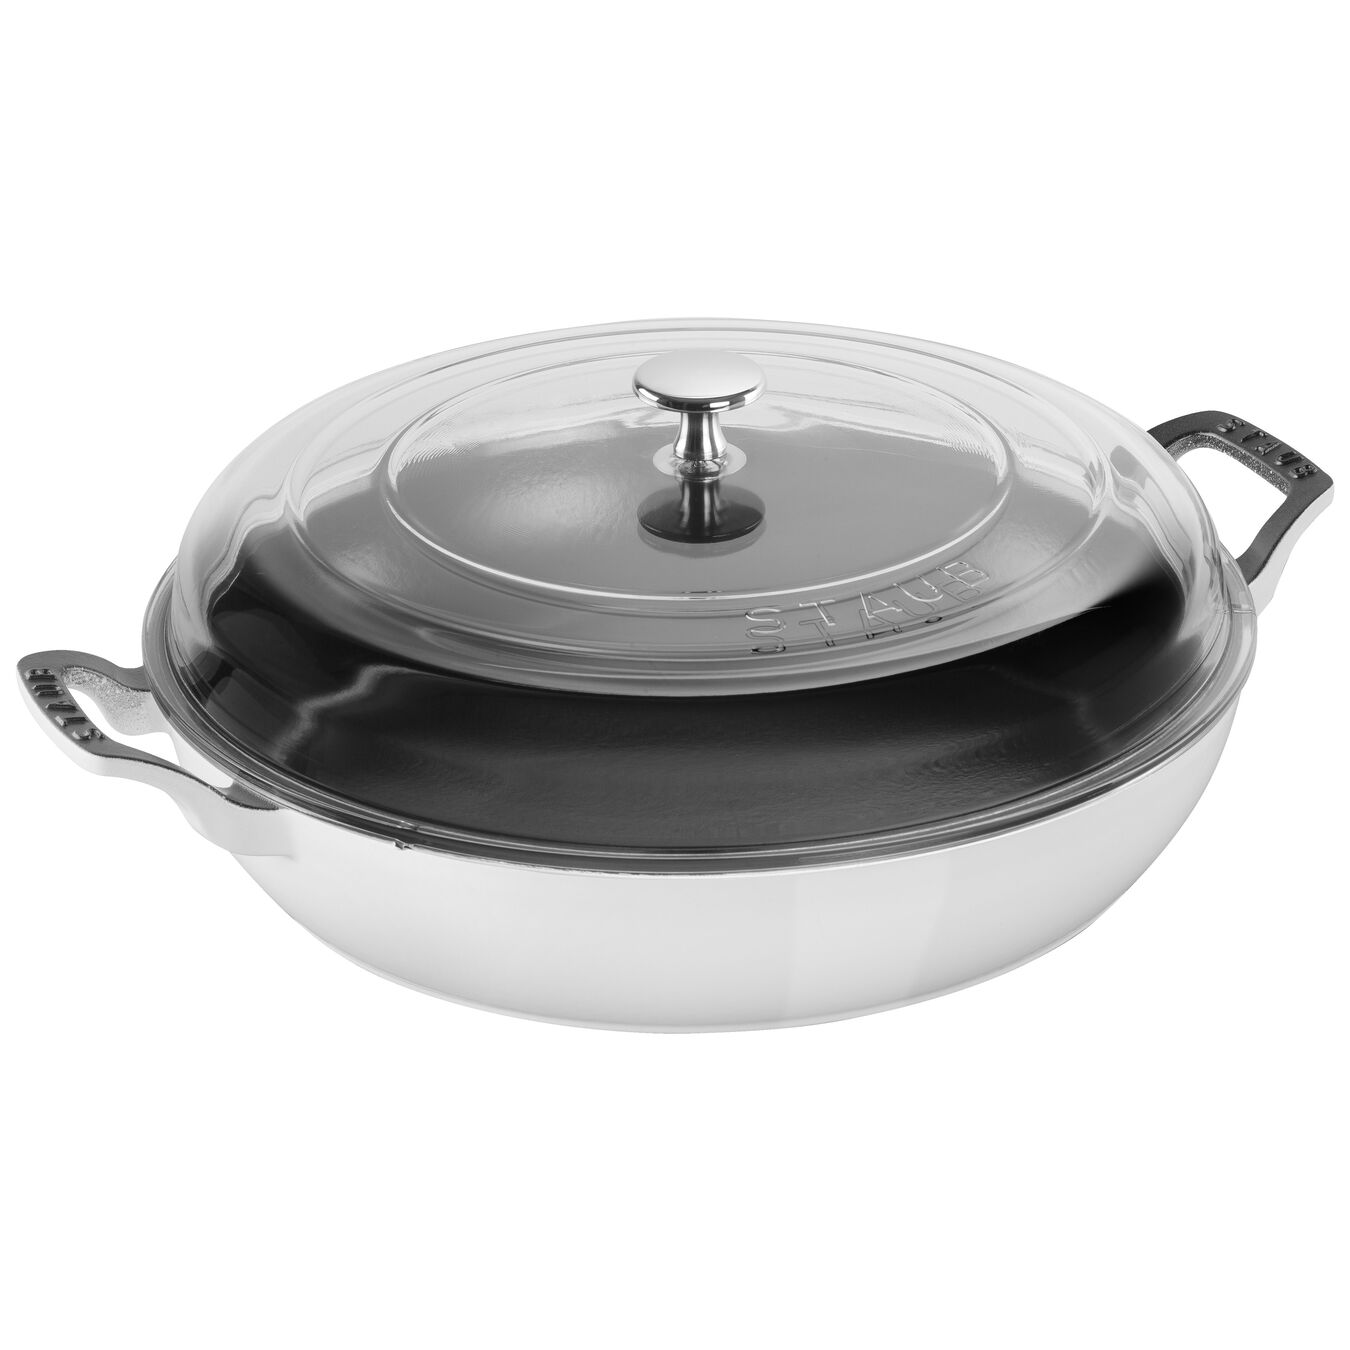 12-inch, Saute pan with glass lid, white,,large 1